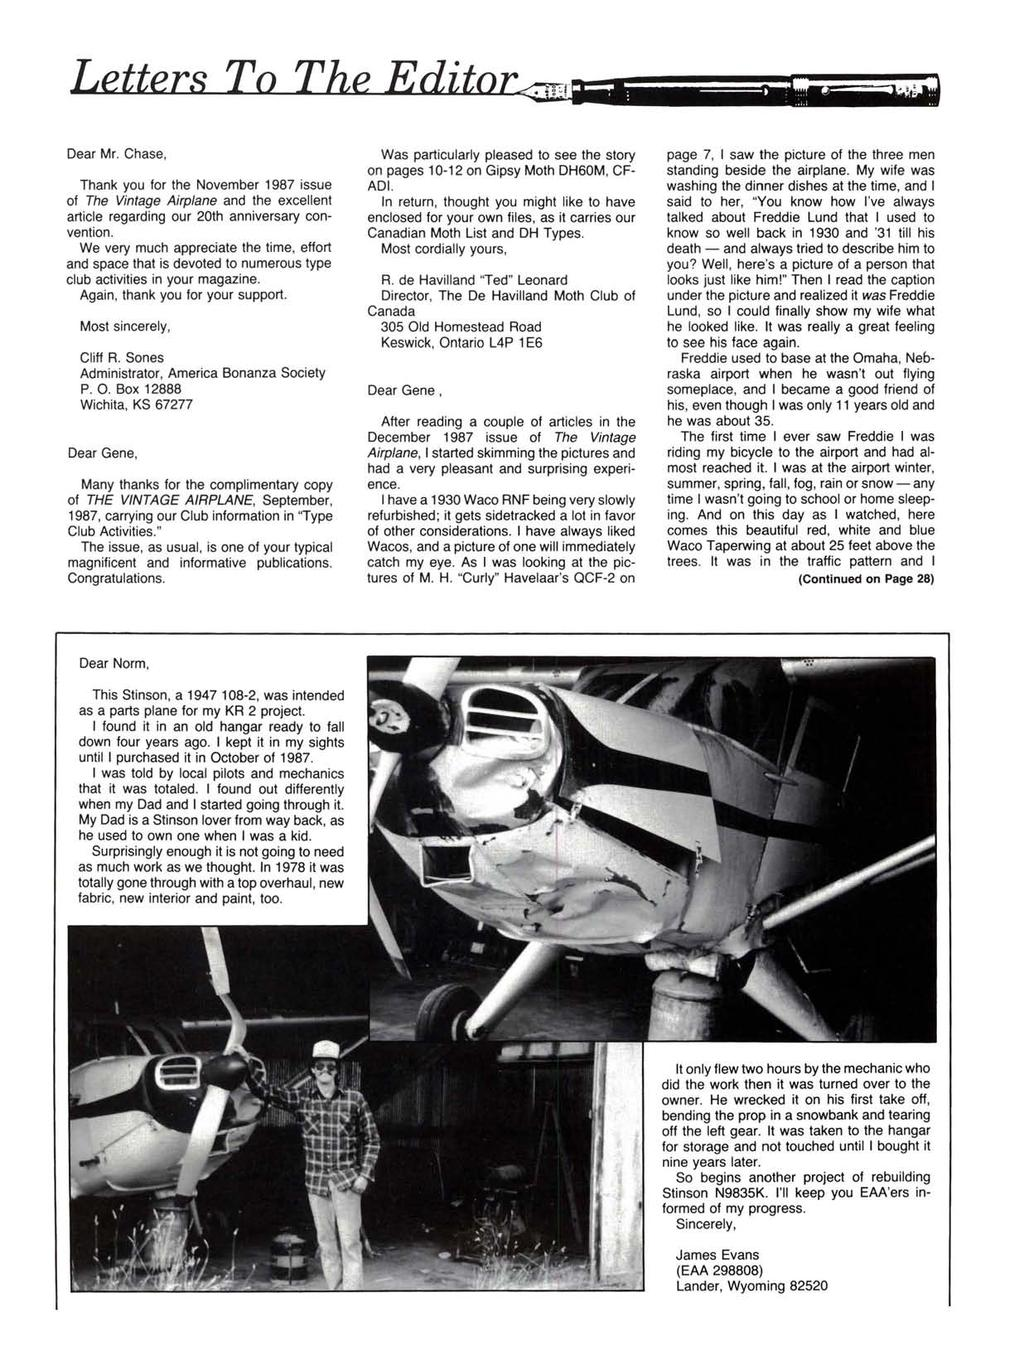 "Letters TO The Edito~.~-;---;-~ "" j Dear Mr. Chase, Thank you for the November 1987 issue of The Vintage Airplane and the excellent article regarding our 20th anniversary convention."